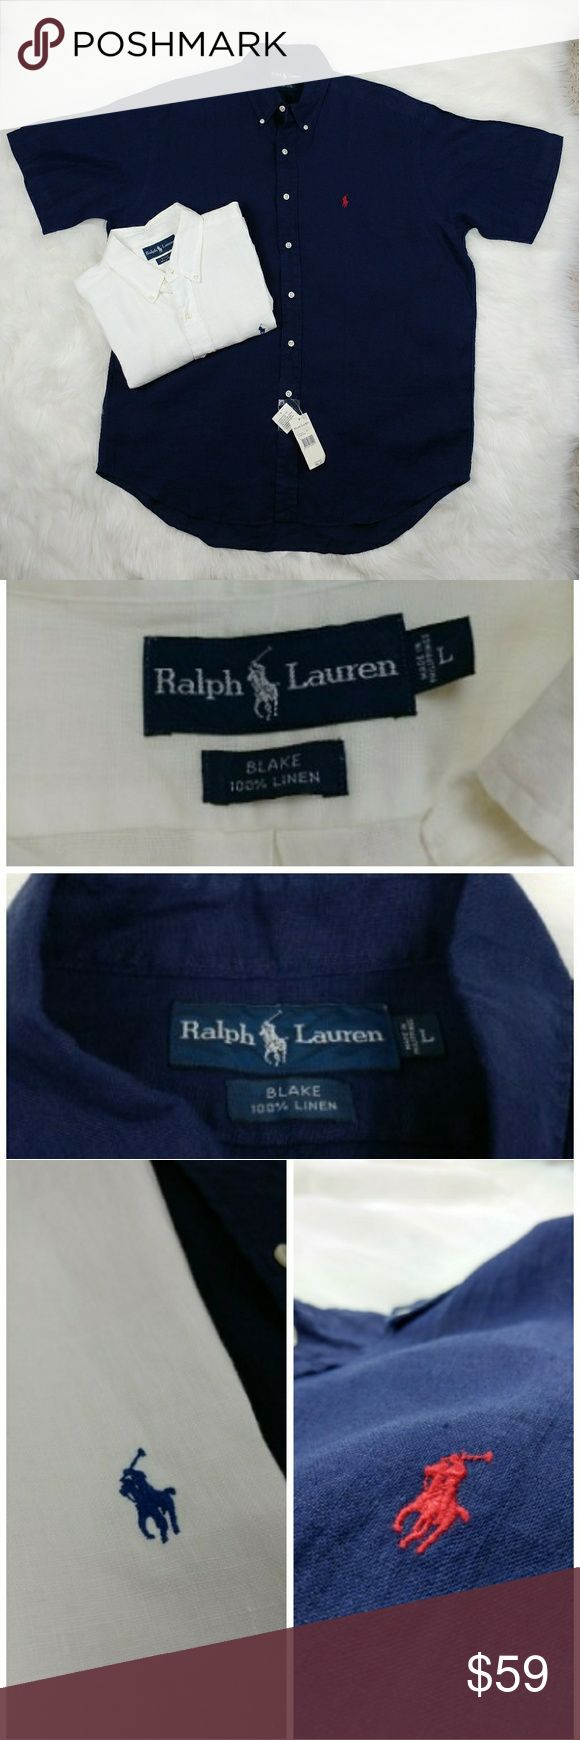 """Ralph Lauren bundle Blake 100% linen shirts Ralph Lauren Blake 100% linen  Two shirt bundle One is navy blue with red horse and New with tags The other one is white with navy blue horse New with no tags Very lightweight and breathable material Measuments taken laying flat across: Armpit to armpit 27"""" Length 35"""" back side from shoulder down Length 33"""" front side from shoulder down Ralph Lauren Shirts Casual Button Down Shirts"""